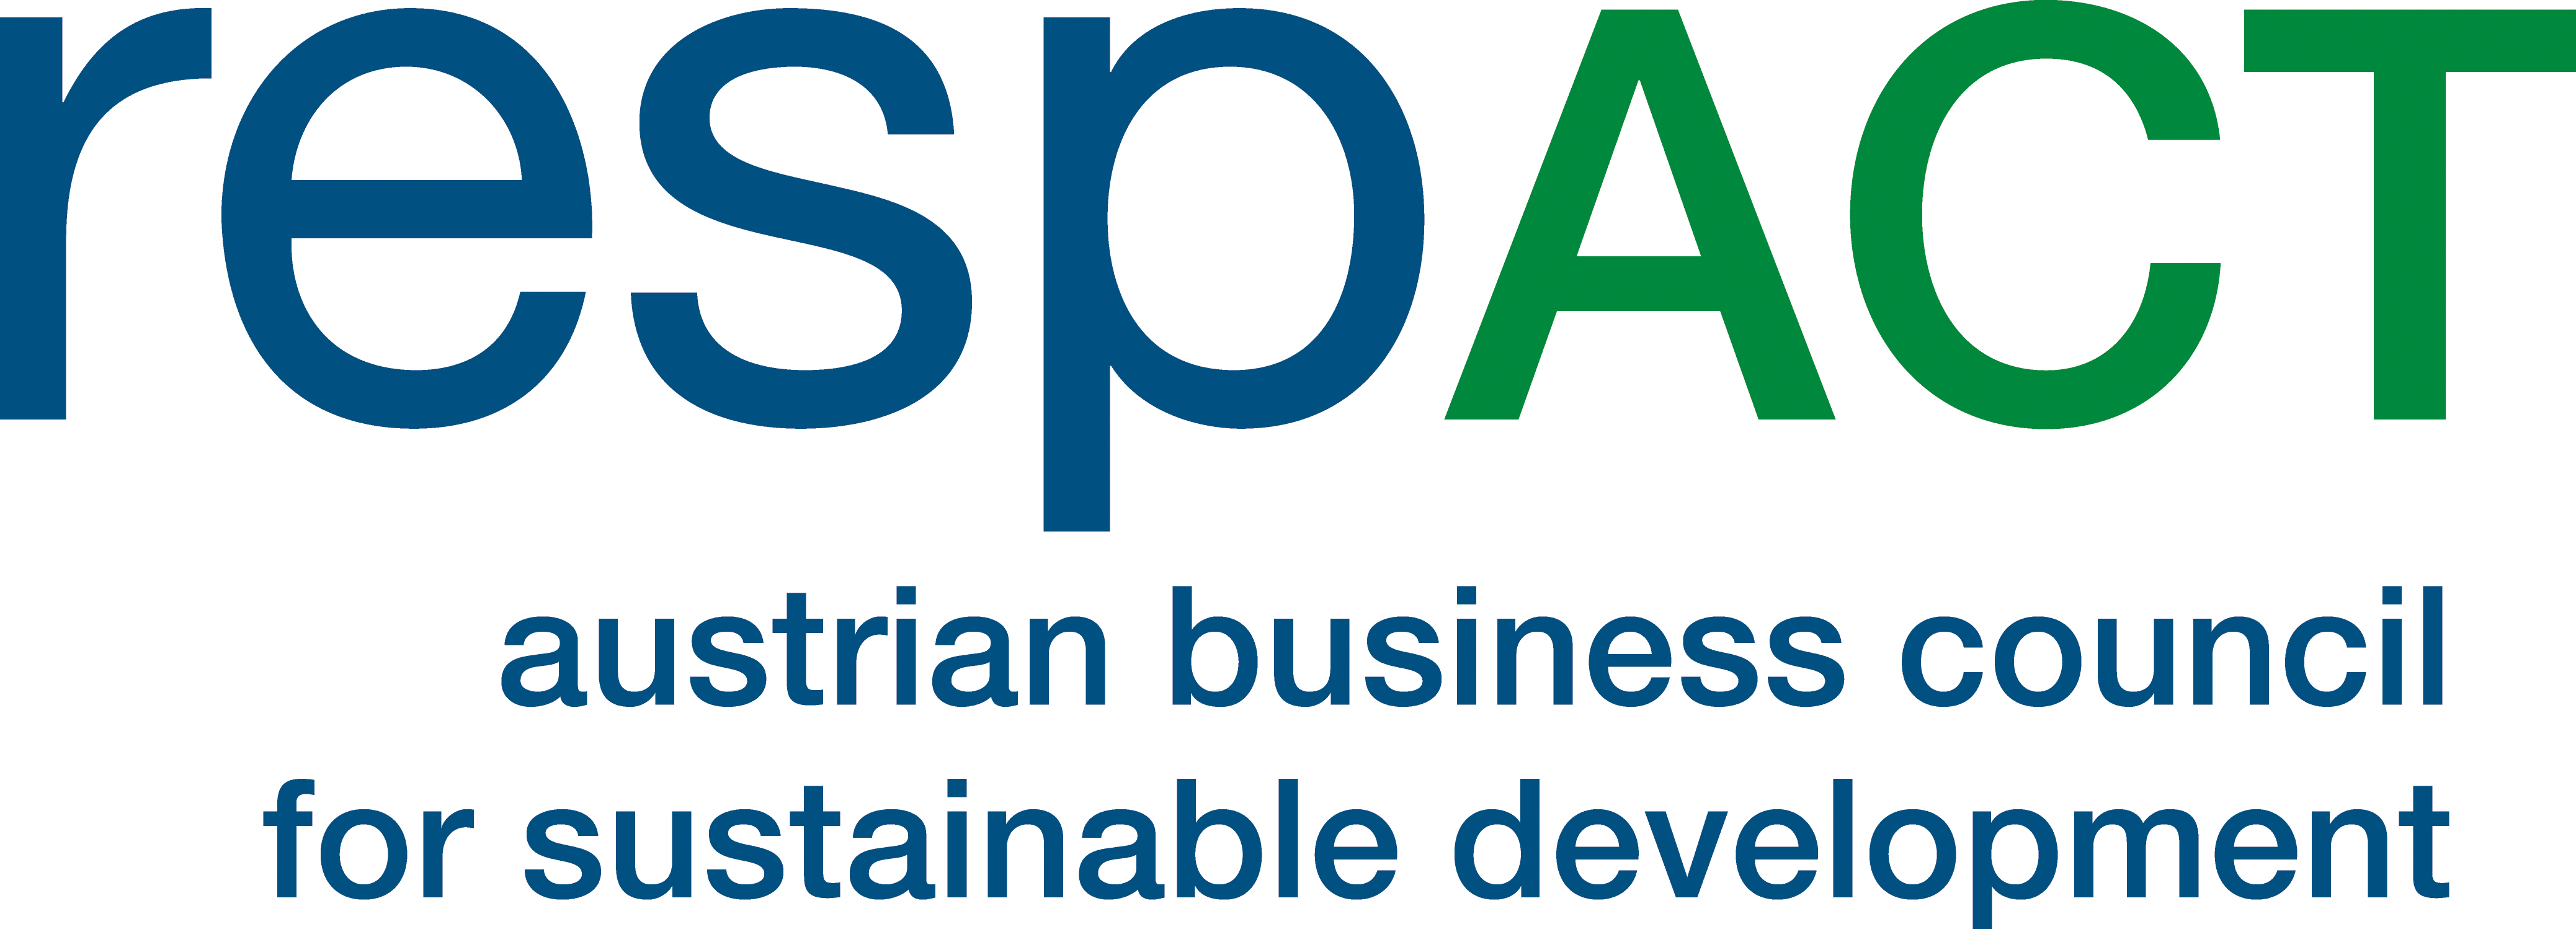 respACT - austrian business council for sustainable development